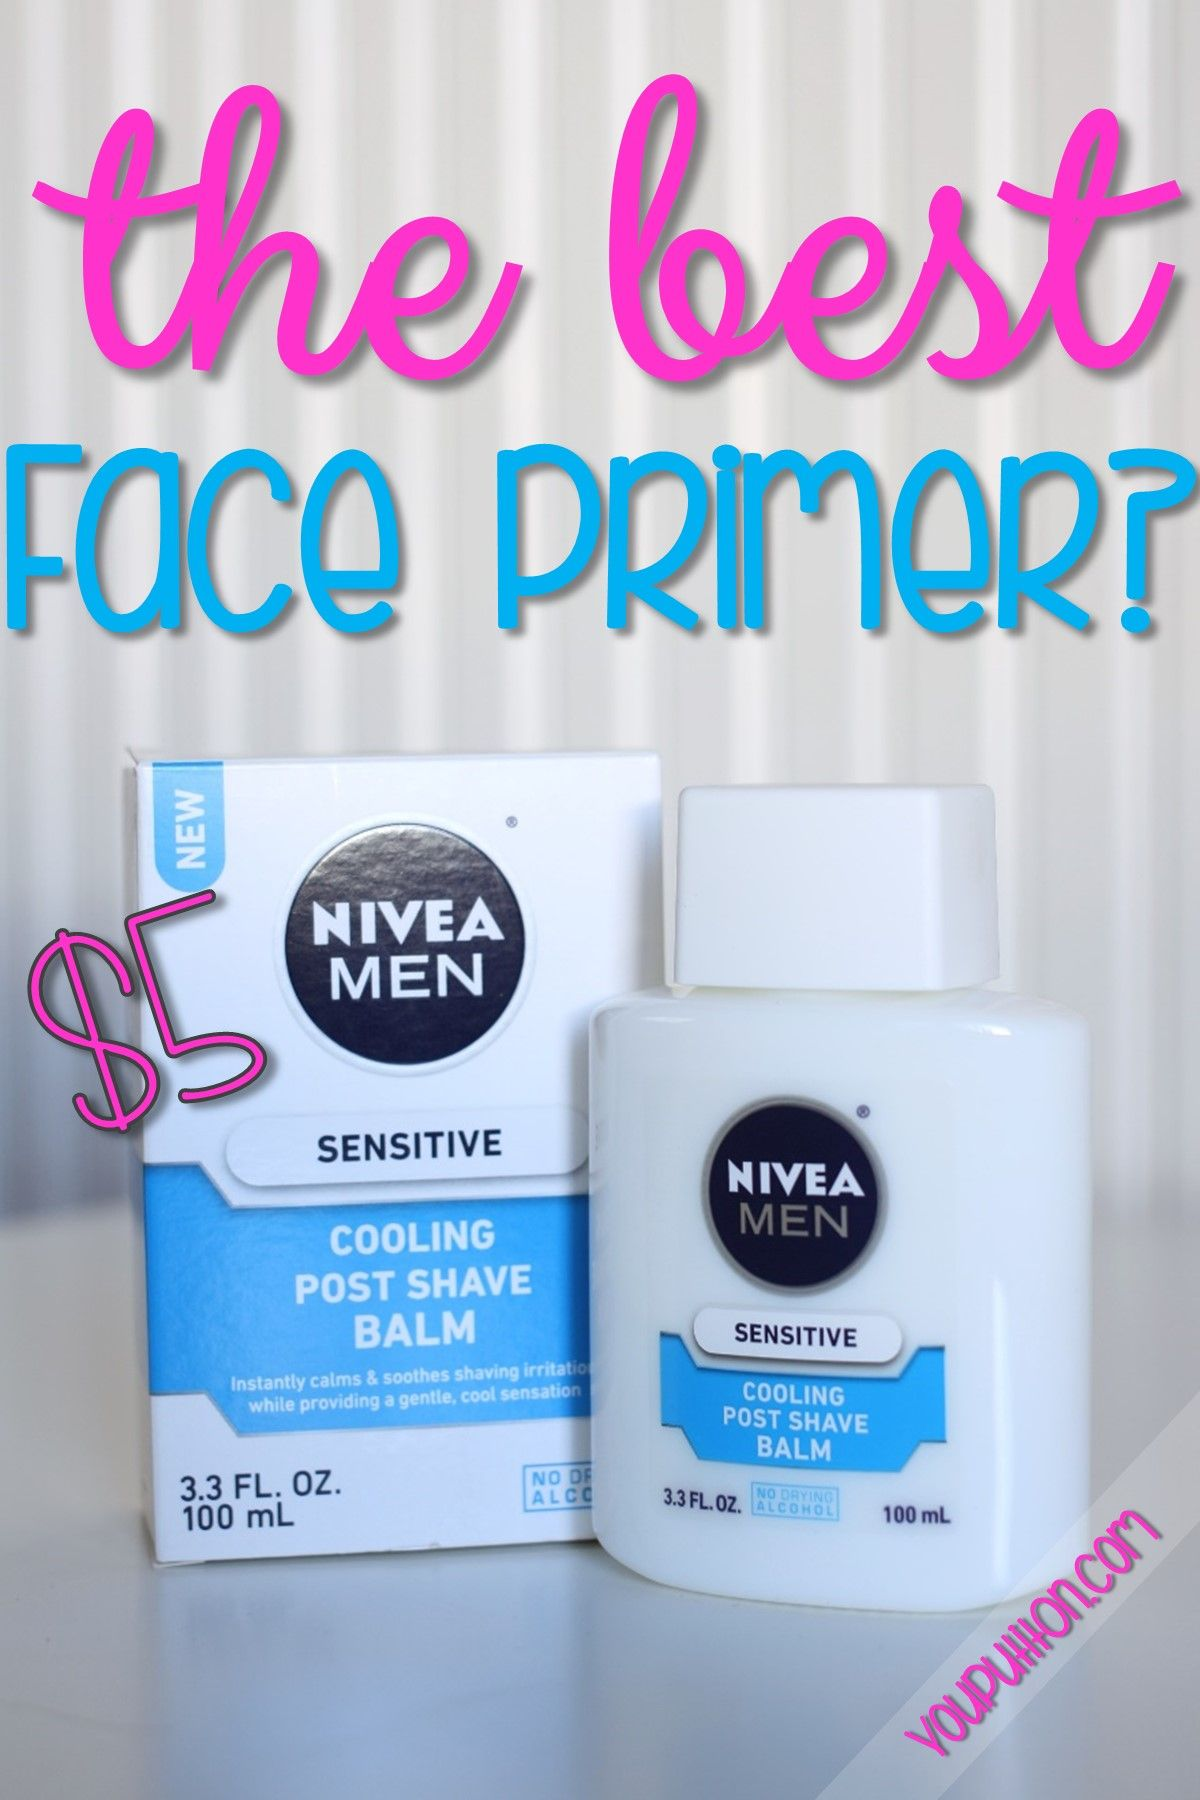 I have been hearing about using Nivea Post Shave Balm as a